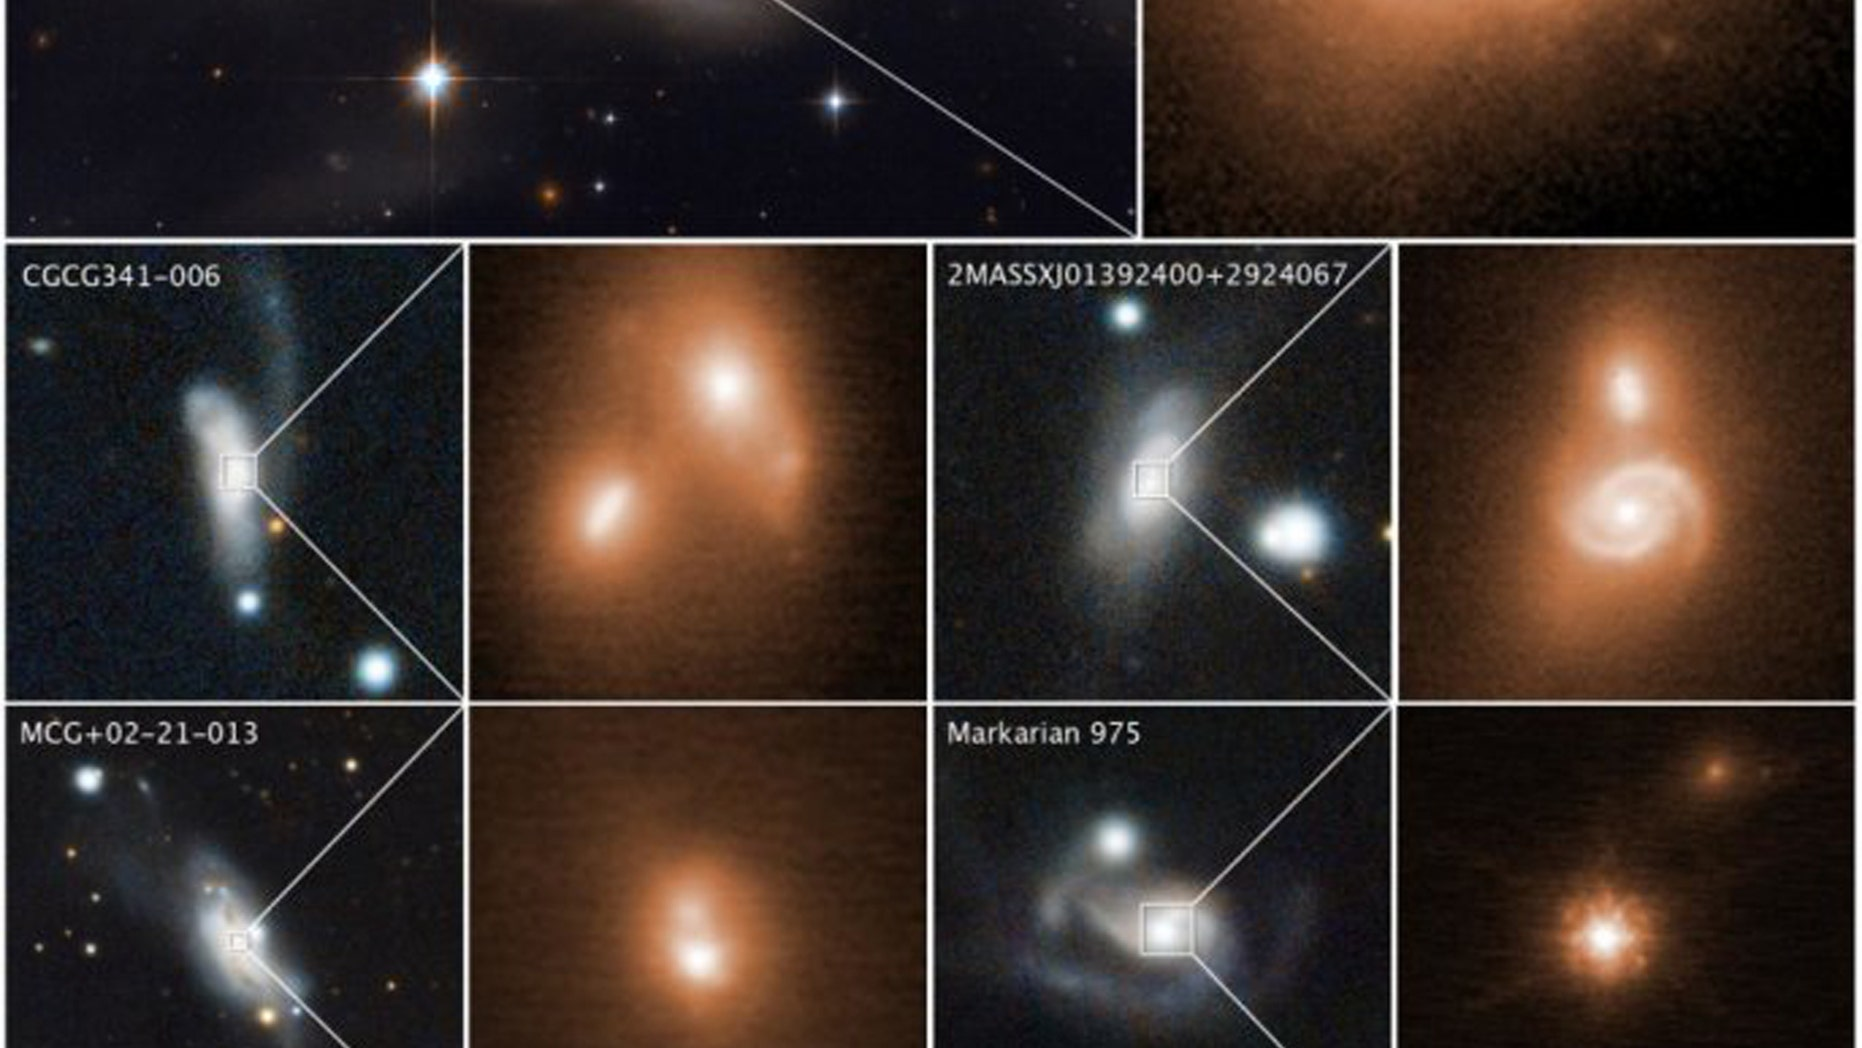 These images exhibit a final theatre of a kinship between pairs of galactic nuclei in a disorderly cores of colliding galaxies. Credit: NASA, ESA, and M. Koss (Eureka Scientific, Inc.)